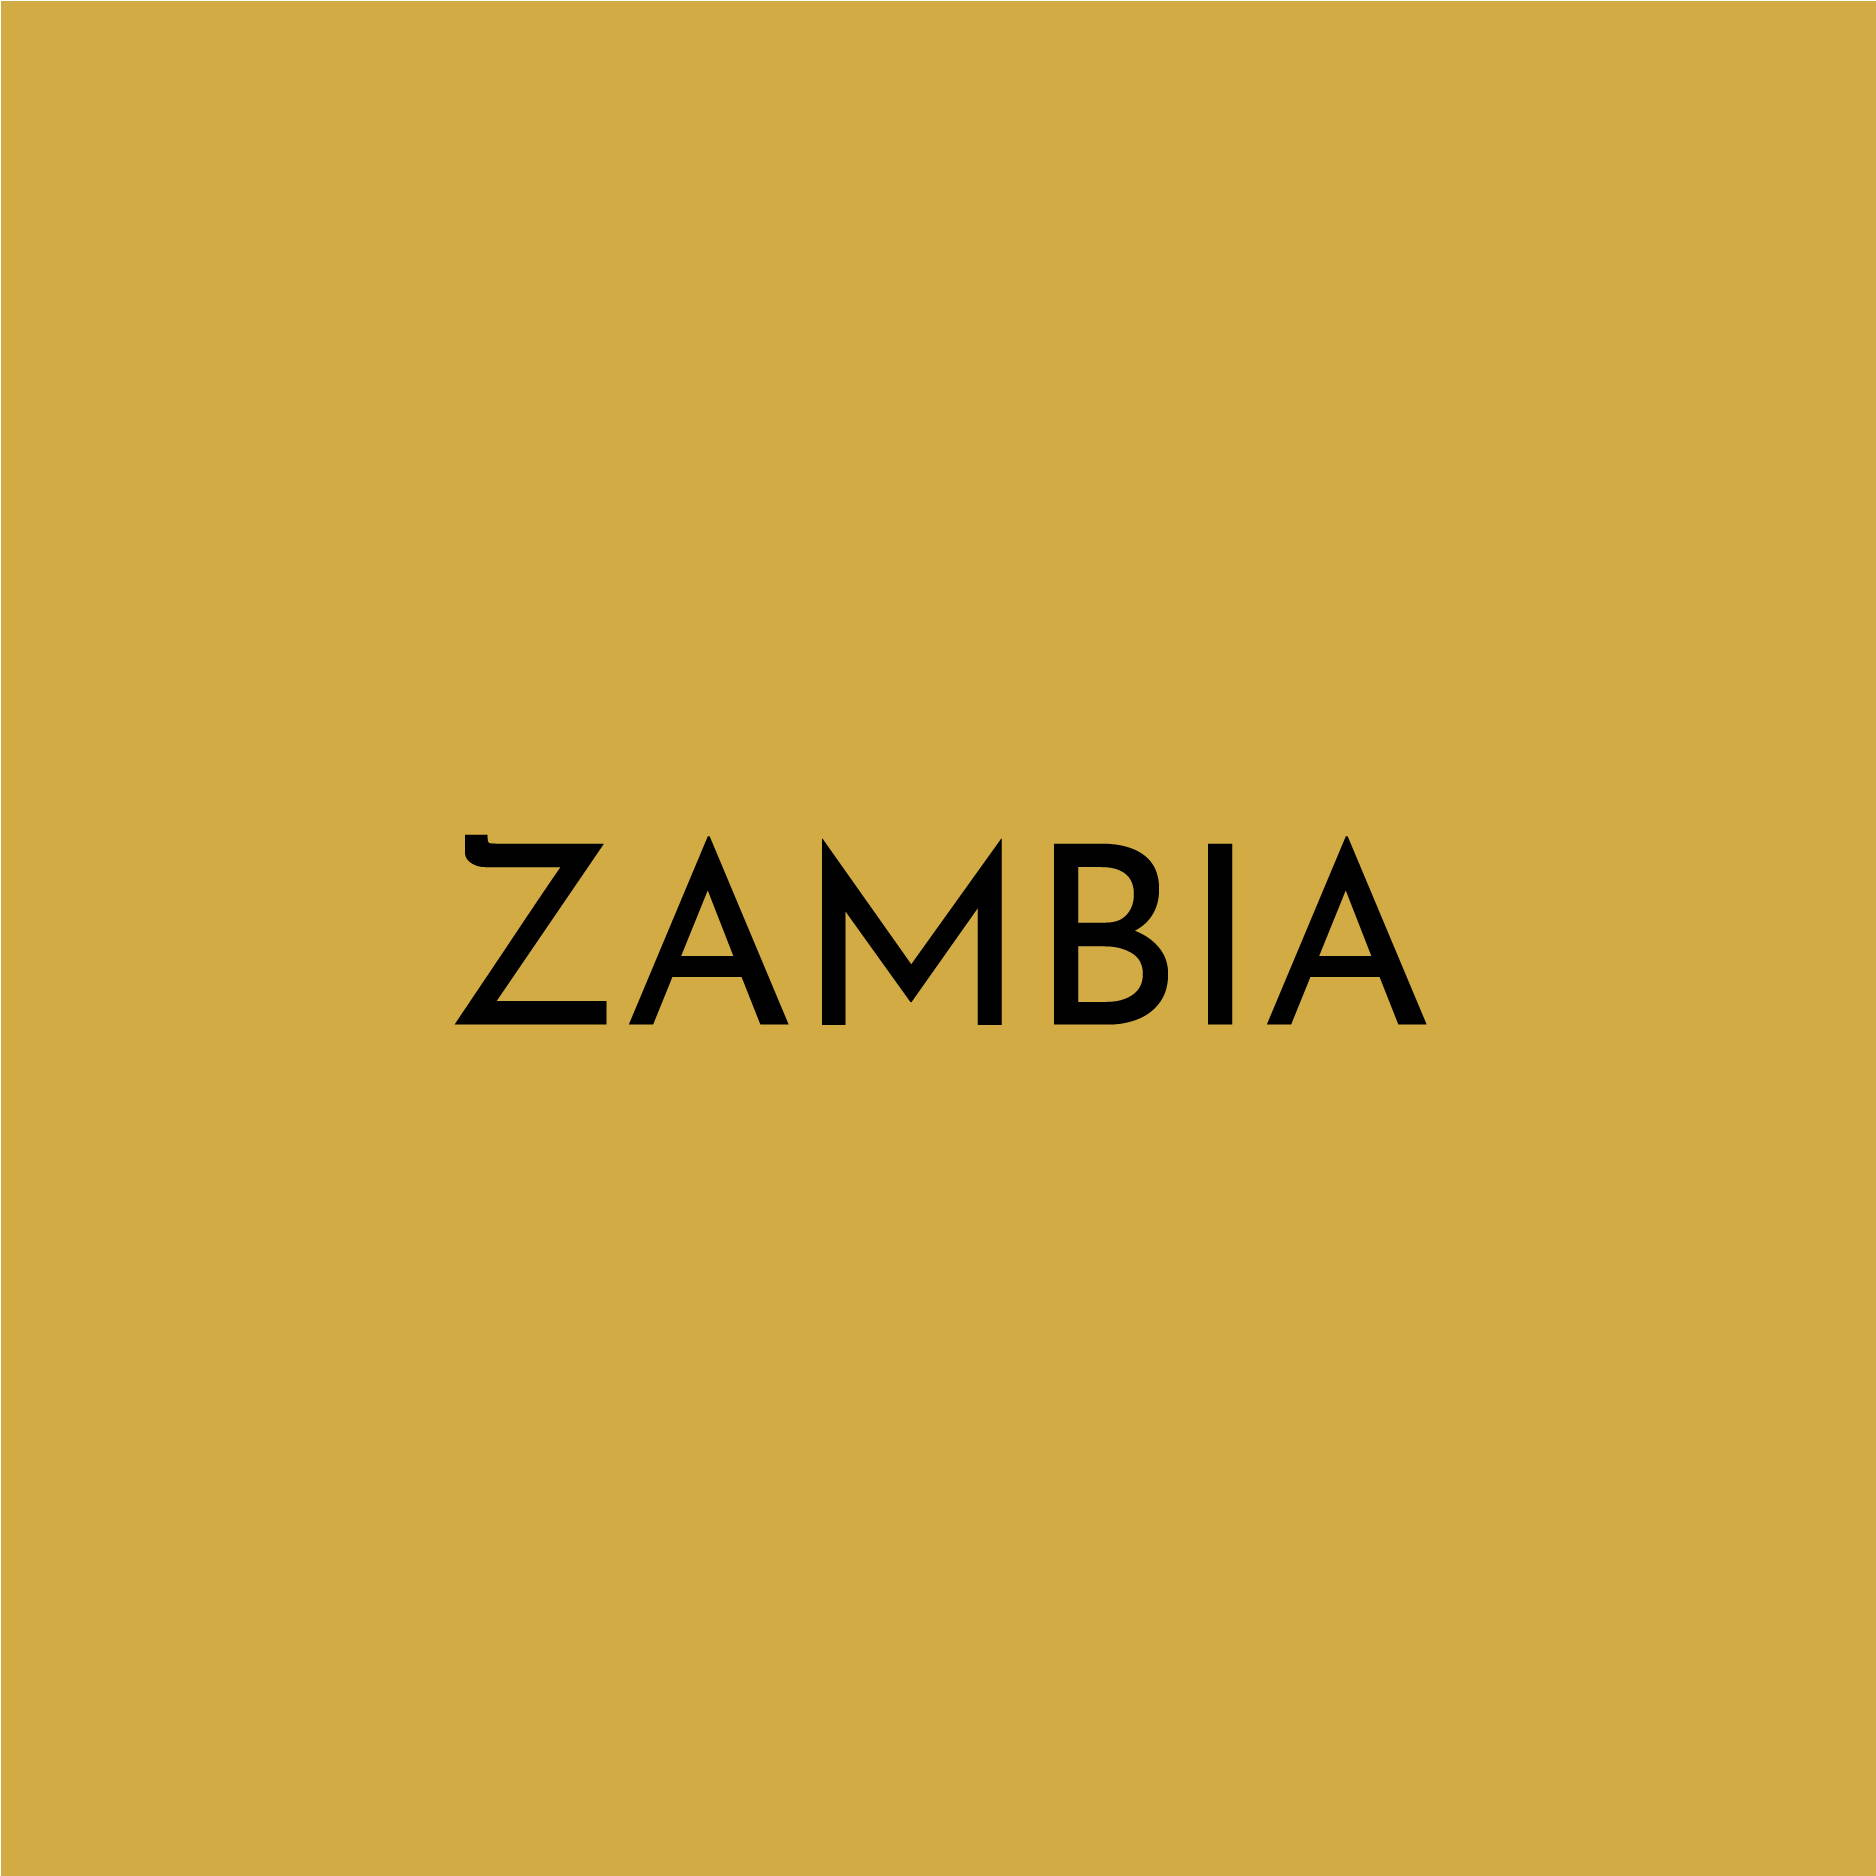 "A solid yellow block contains the text ""ZAMBIA"""